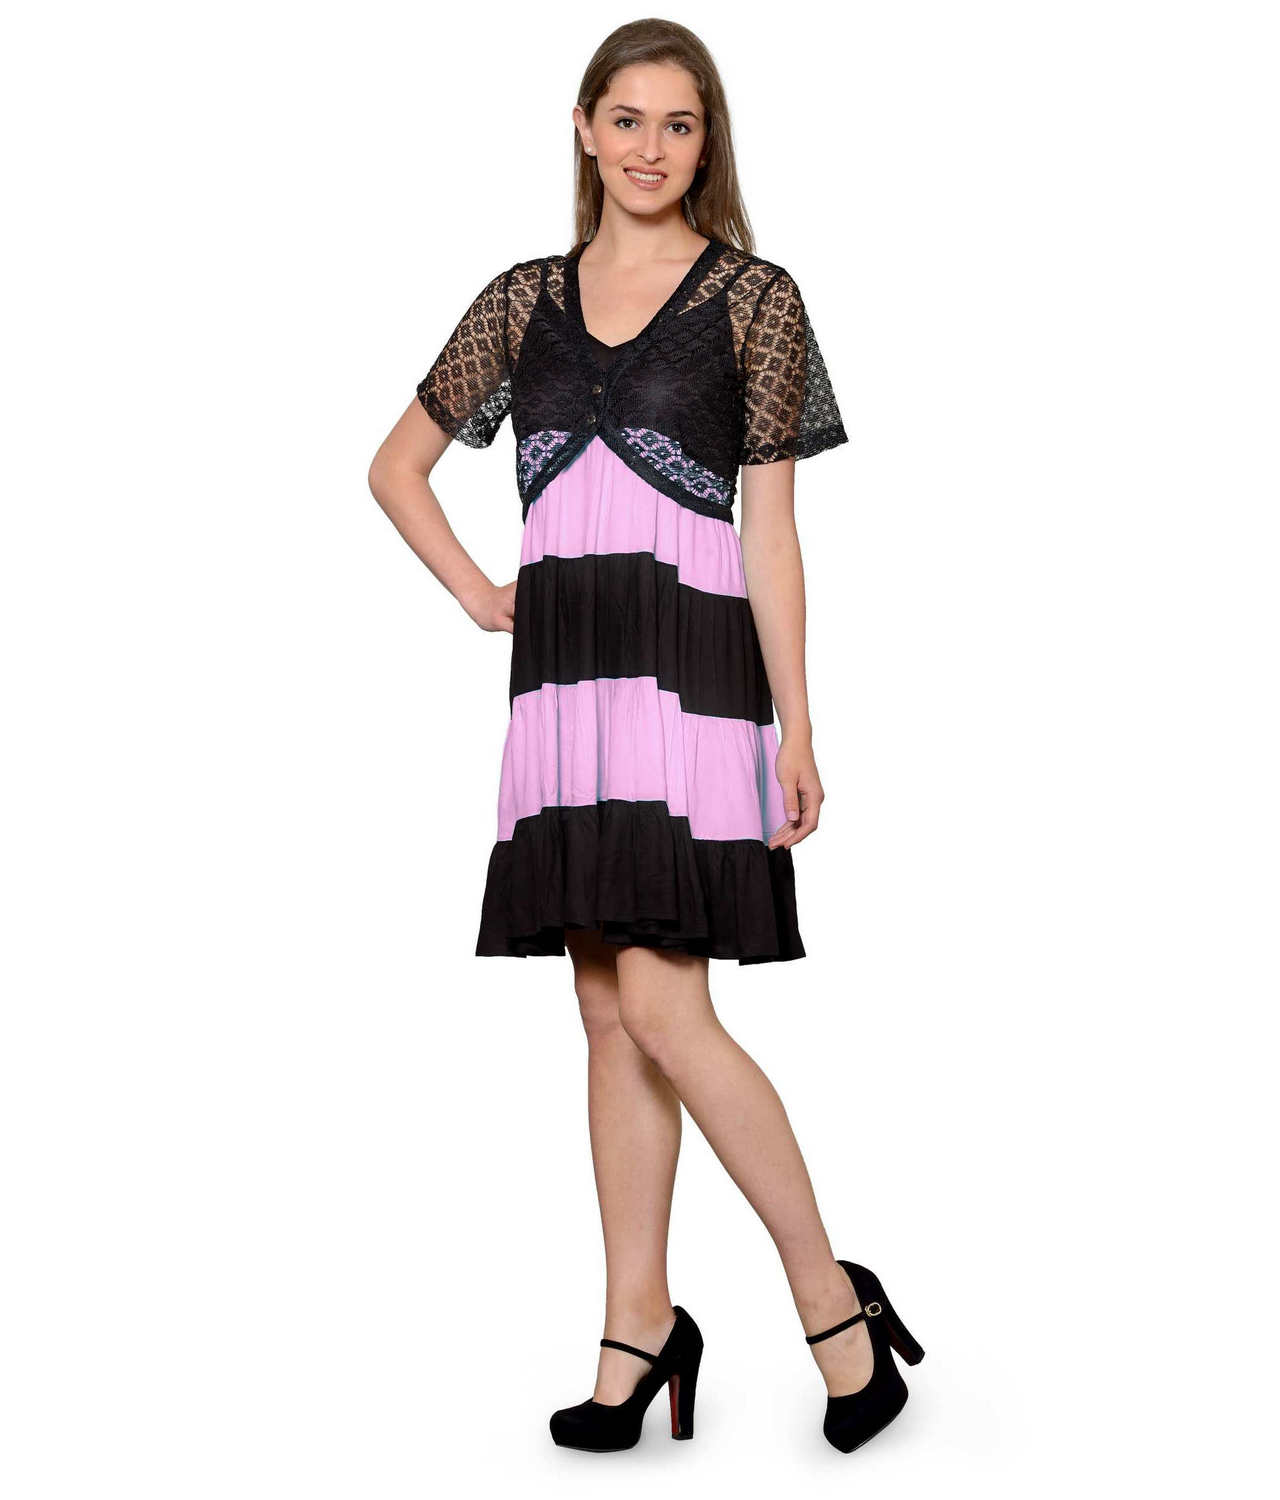 Cocktail Knee Length Dress with Shrug in Black:Baby Pink